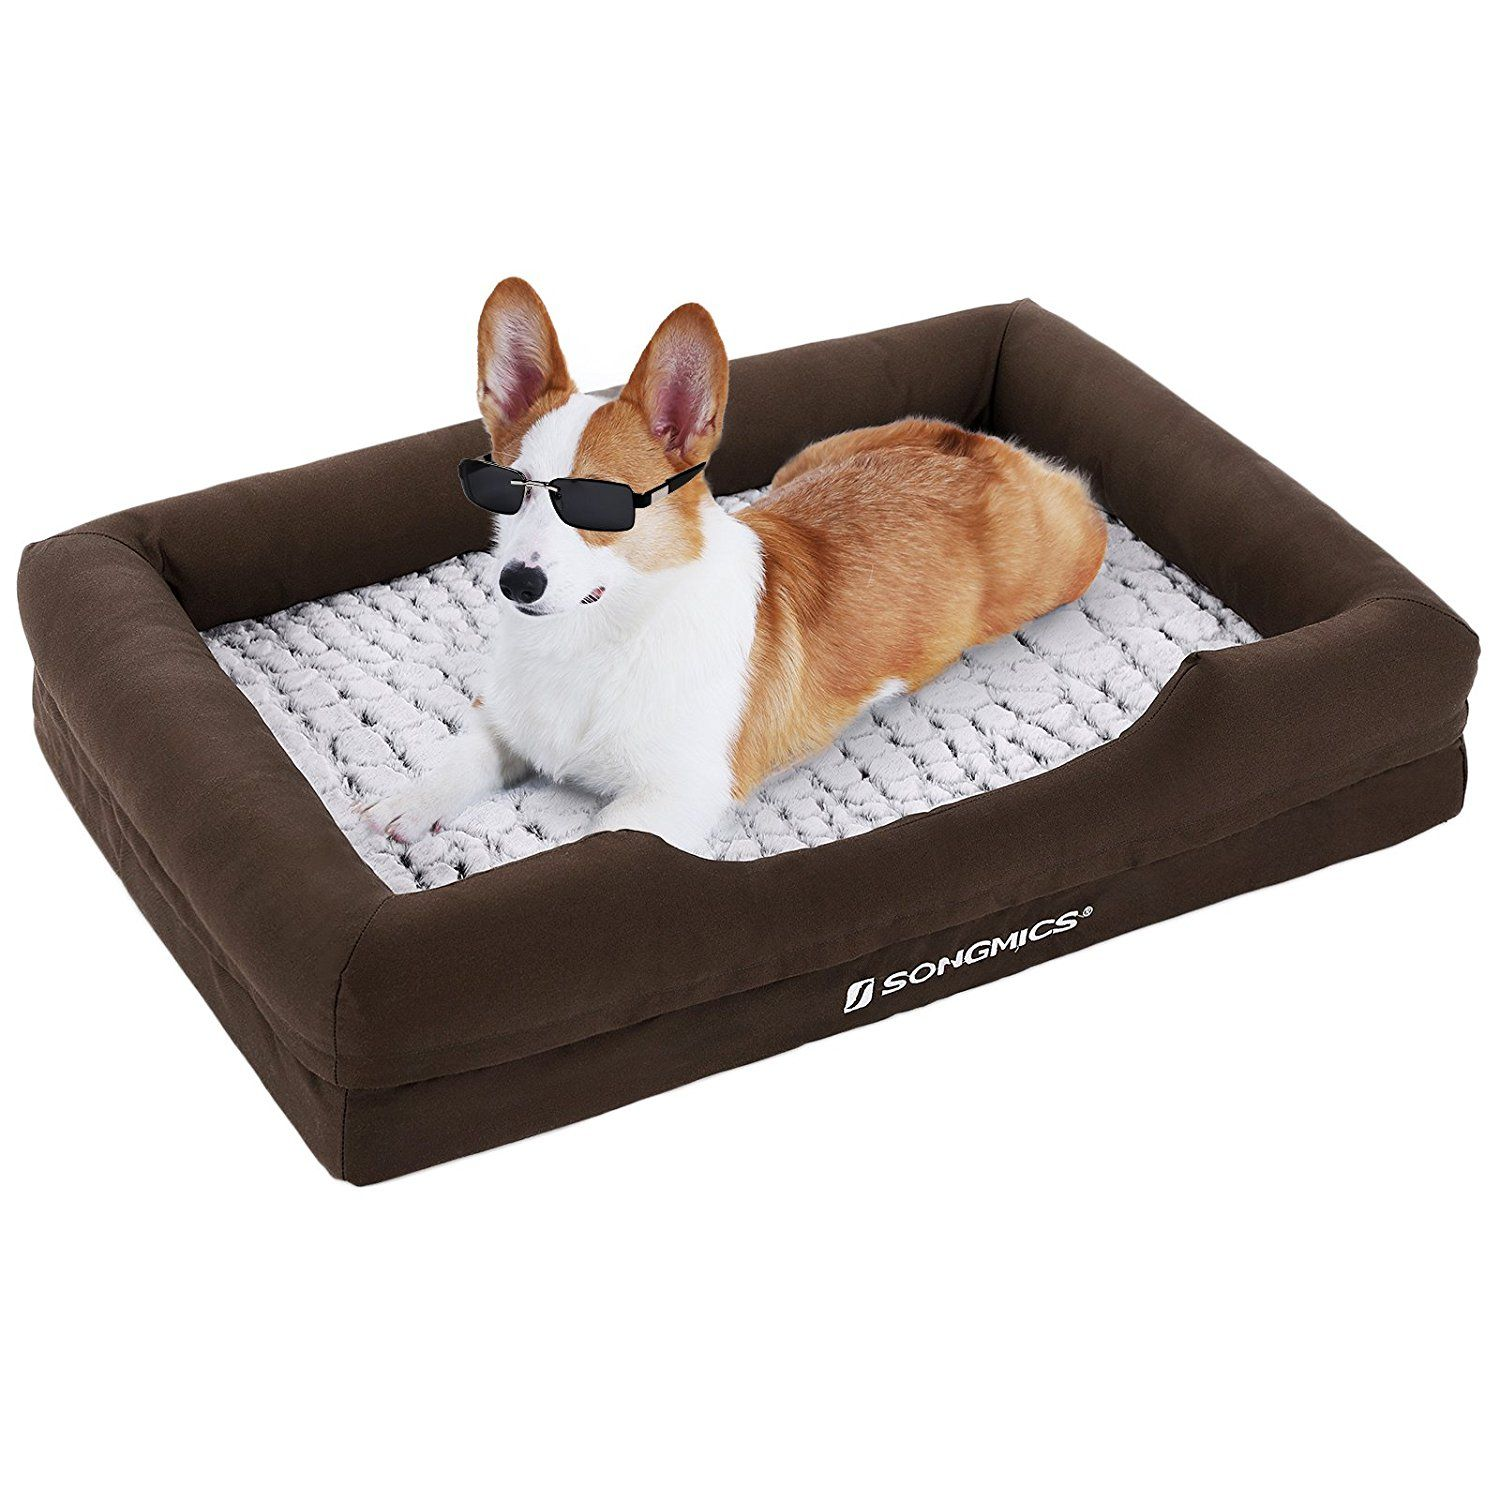 Pin On Cheap Dog Beds